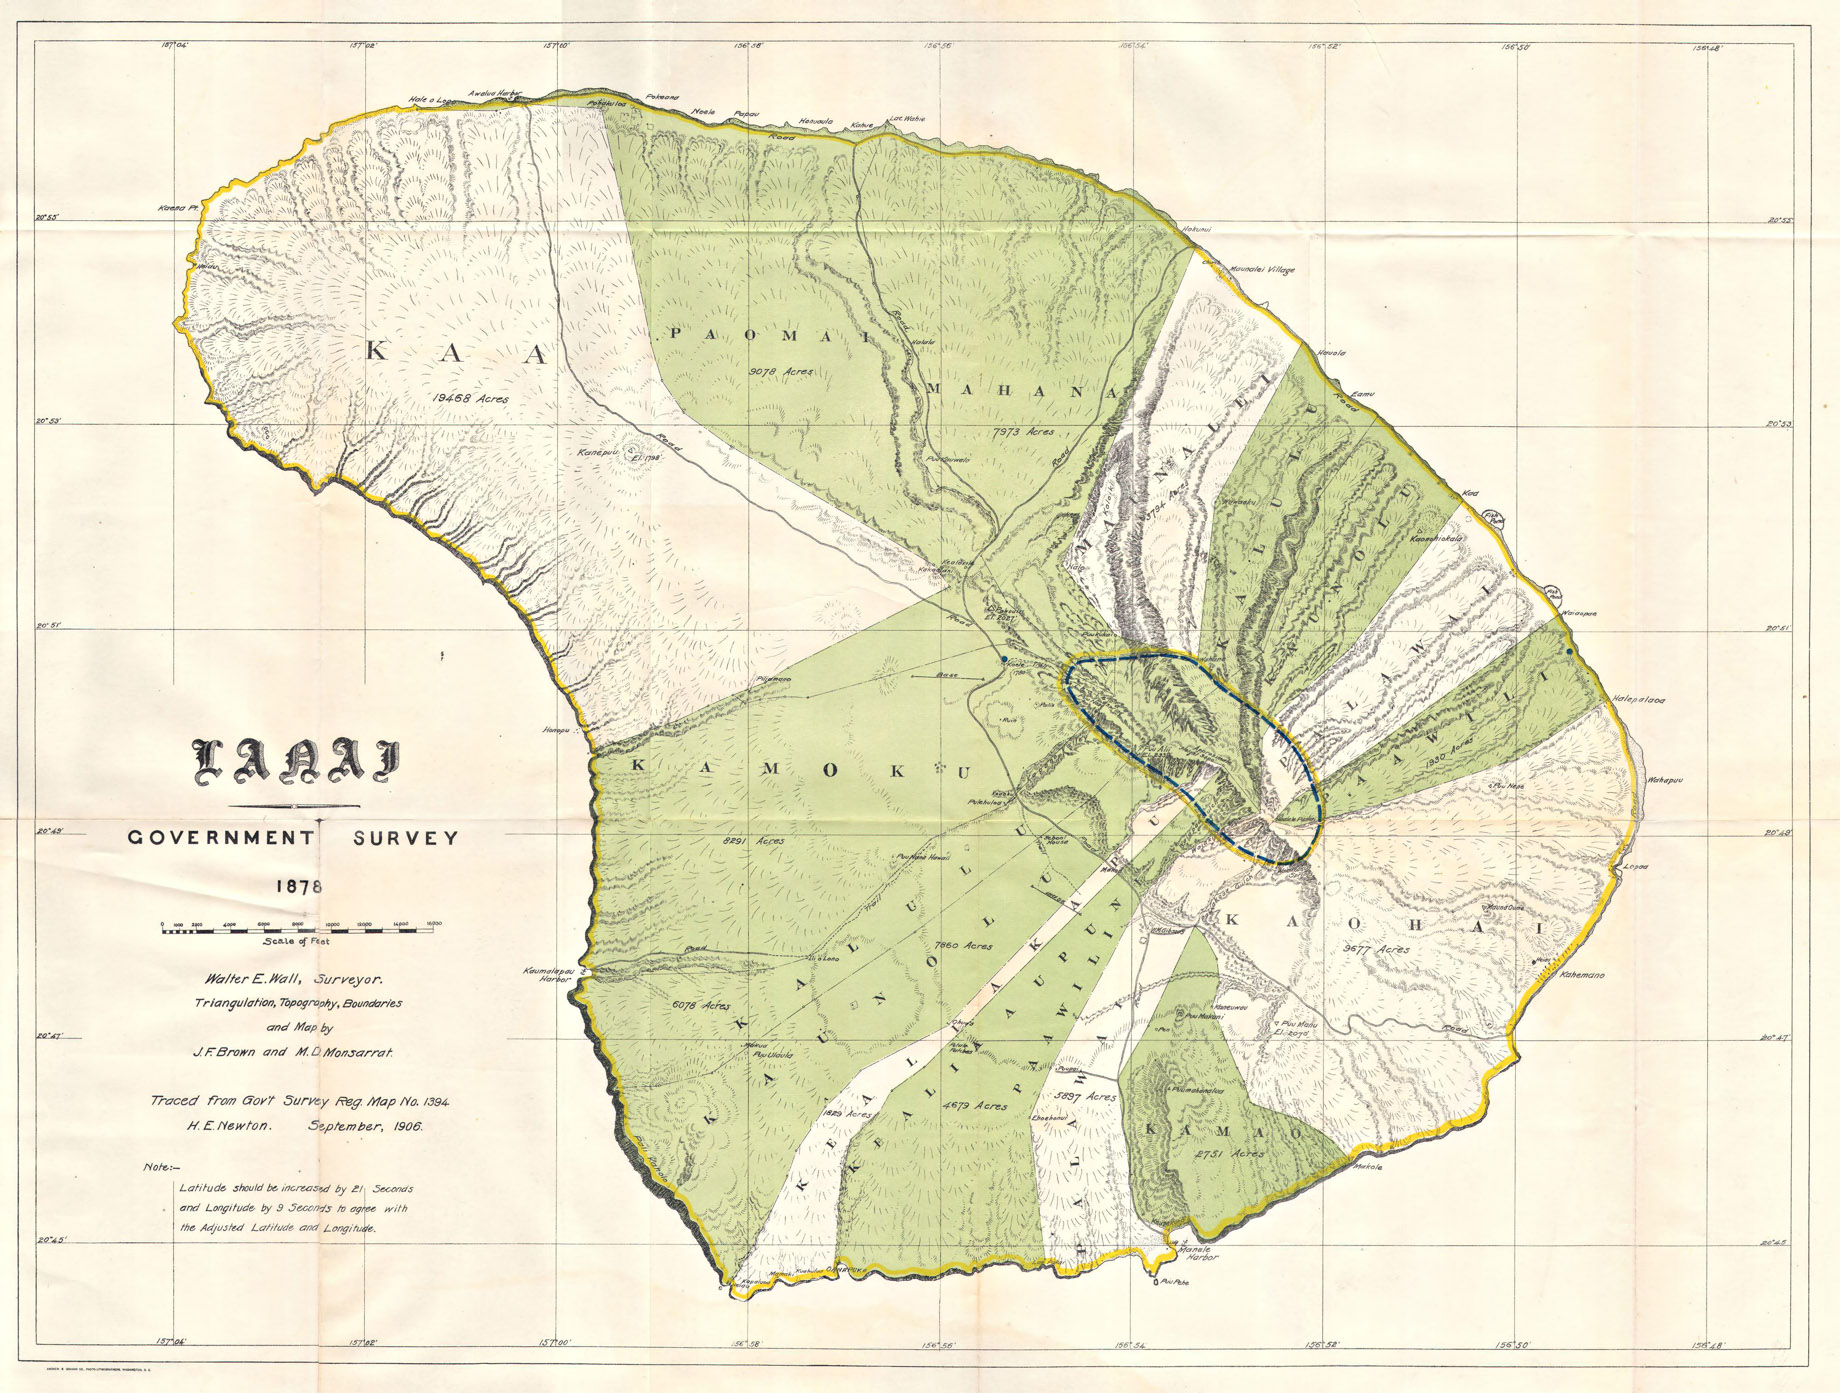 1878 US Government Land Office Map of Lanai, Hawaii – The Most Expensive Private Island Real Estate Transaction in History